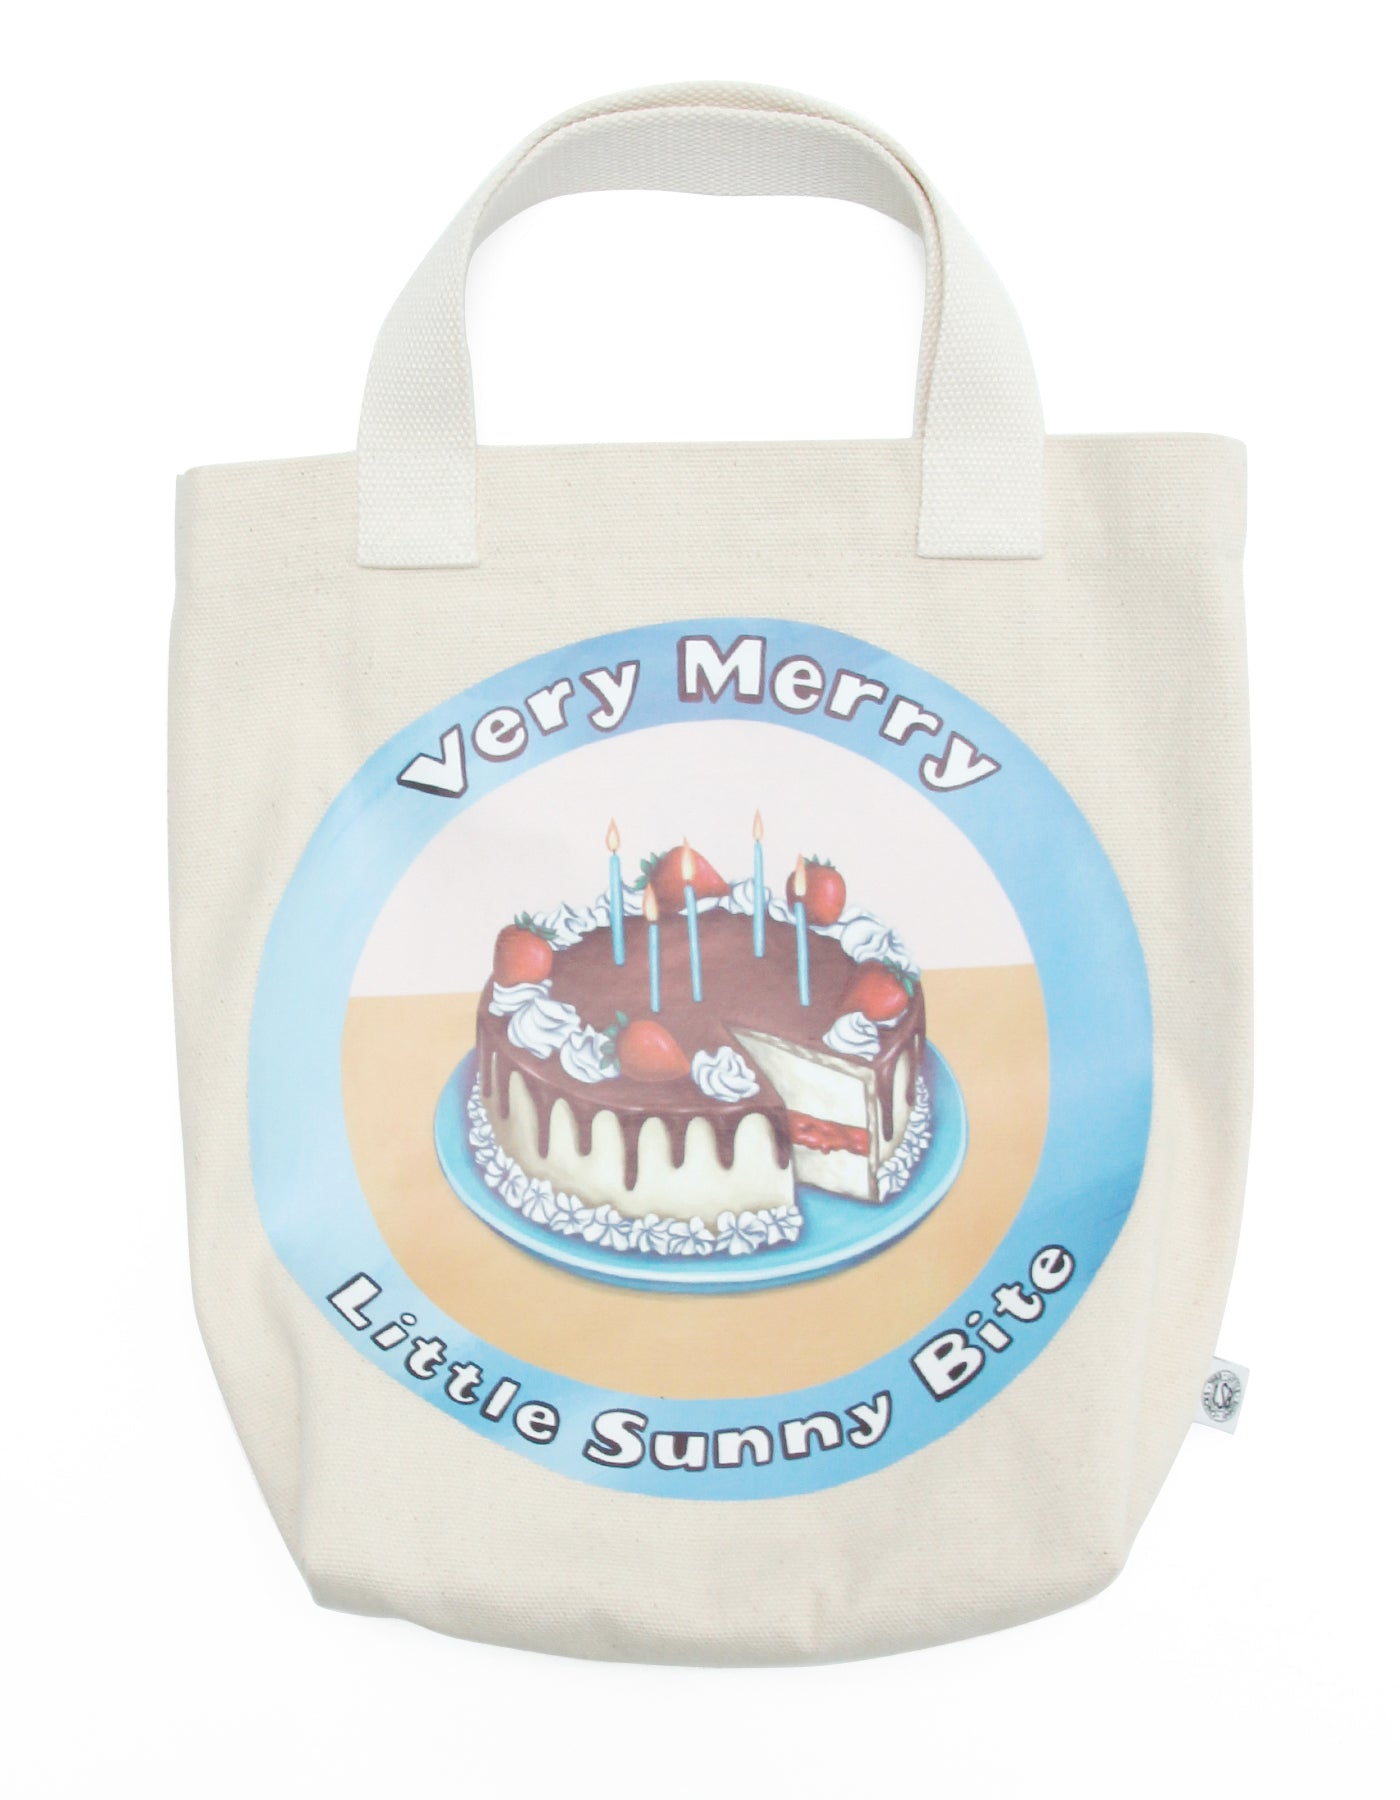 Very Merry little sunny bite tote bag / WHITE